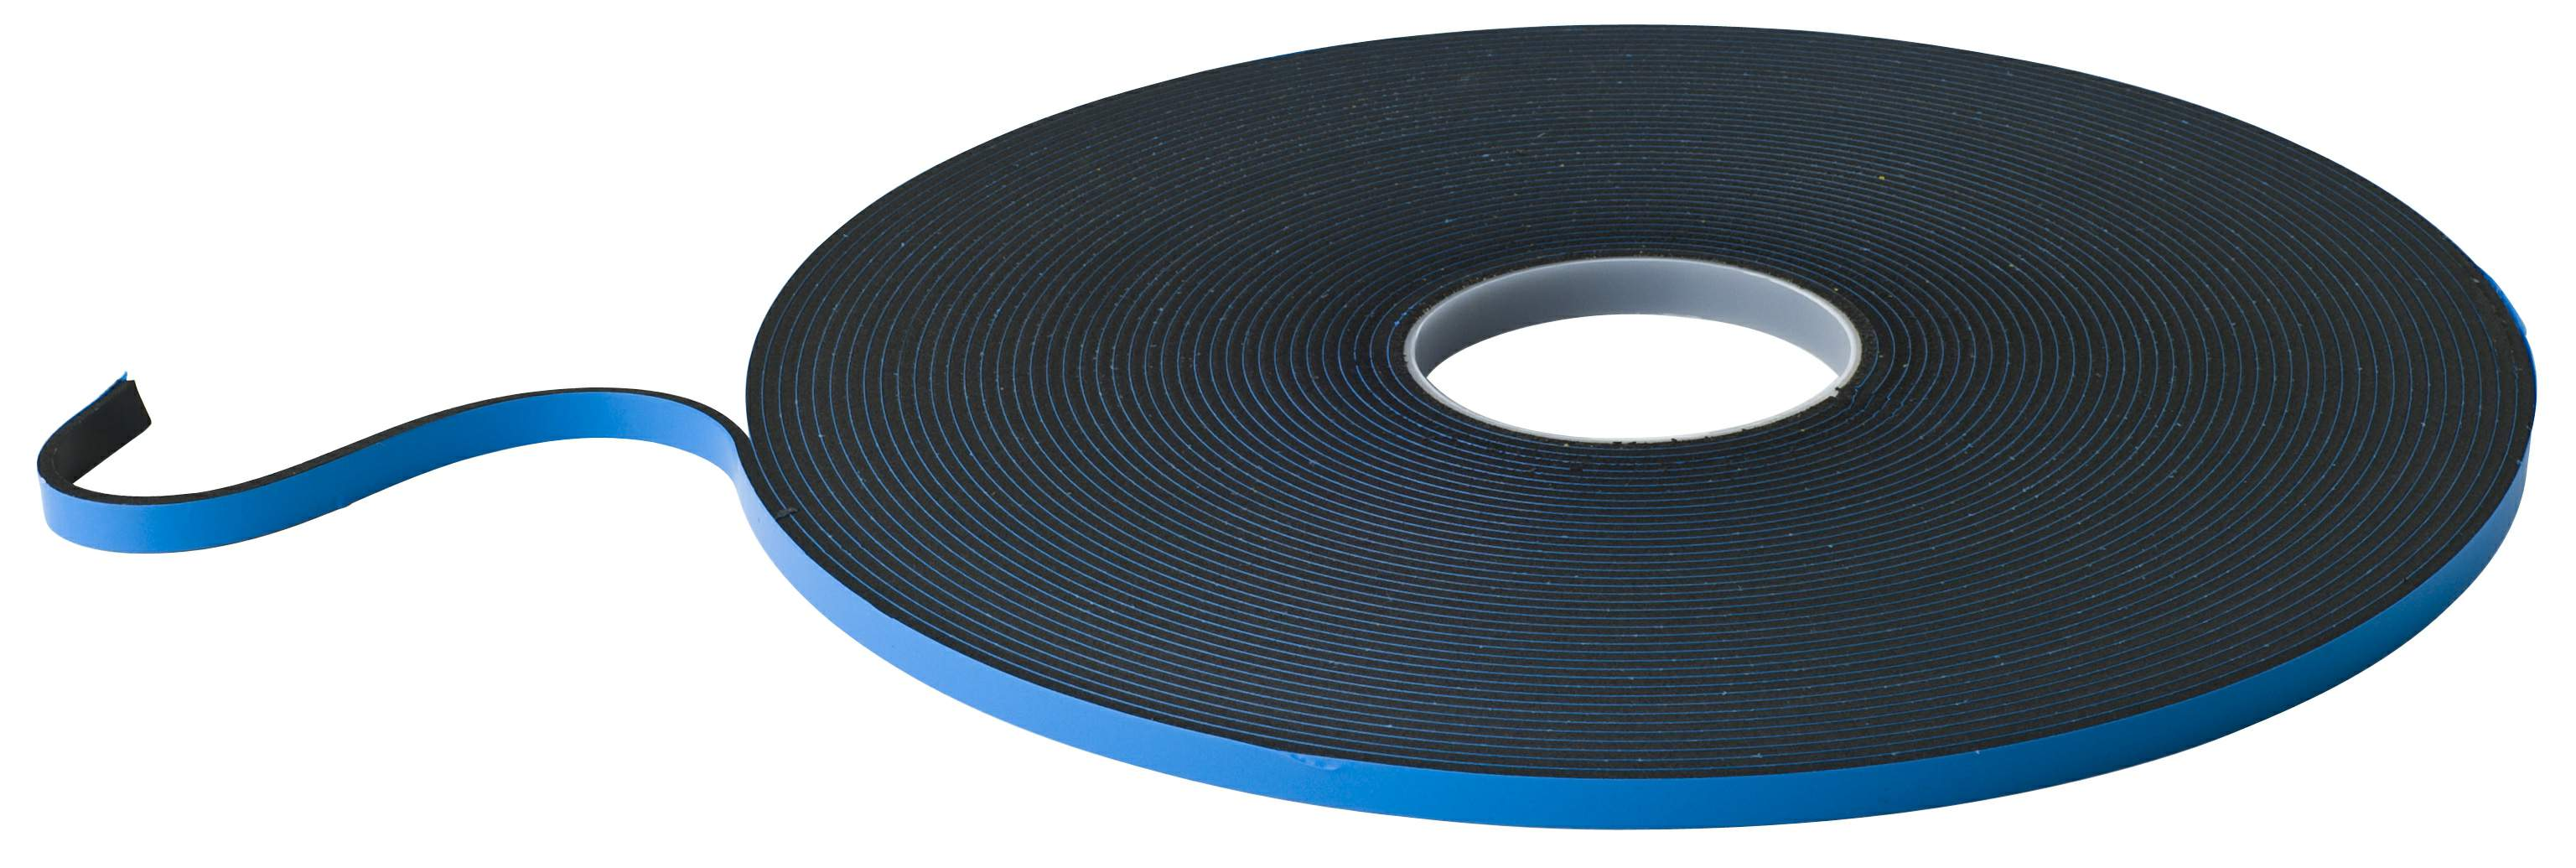 Thumbnail - FOAM TAPE S/S STRUCTURAL 3.2mm X 9mm X 15.2M